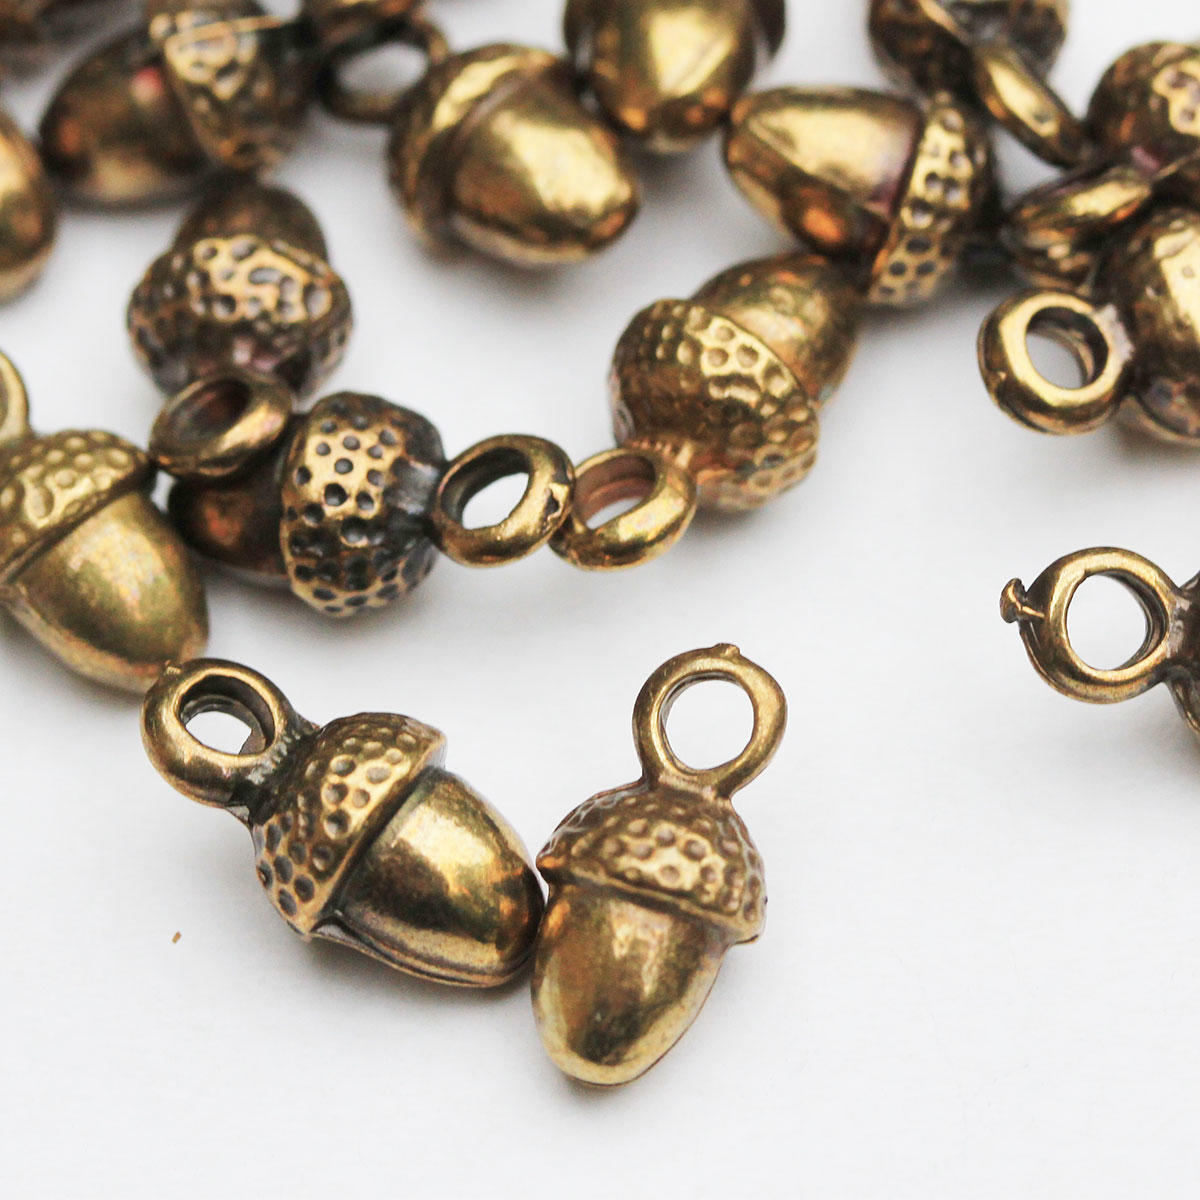 Antique Gold Acorn Charm